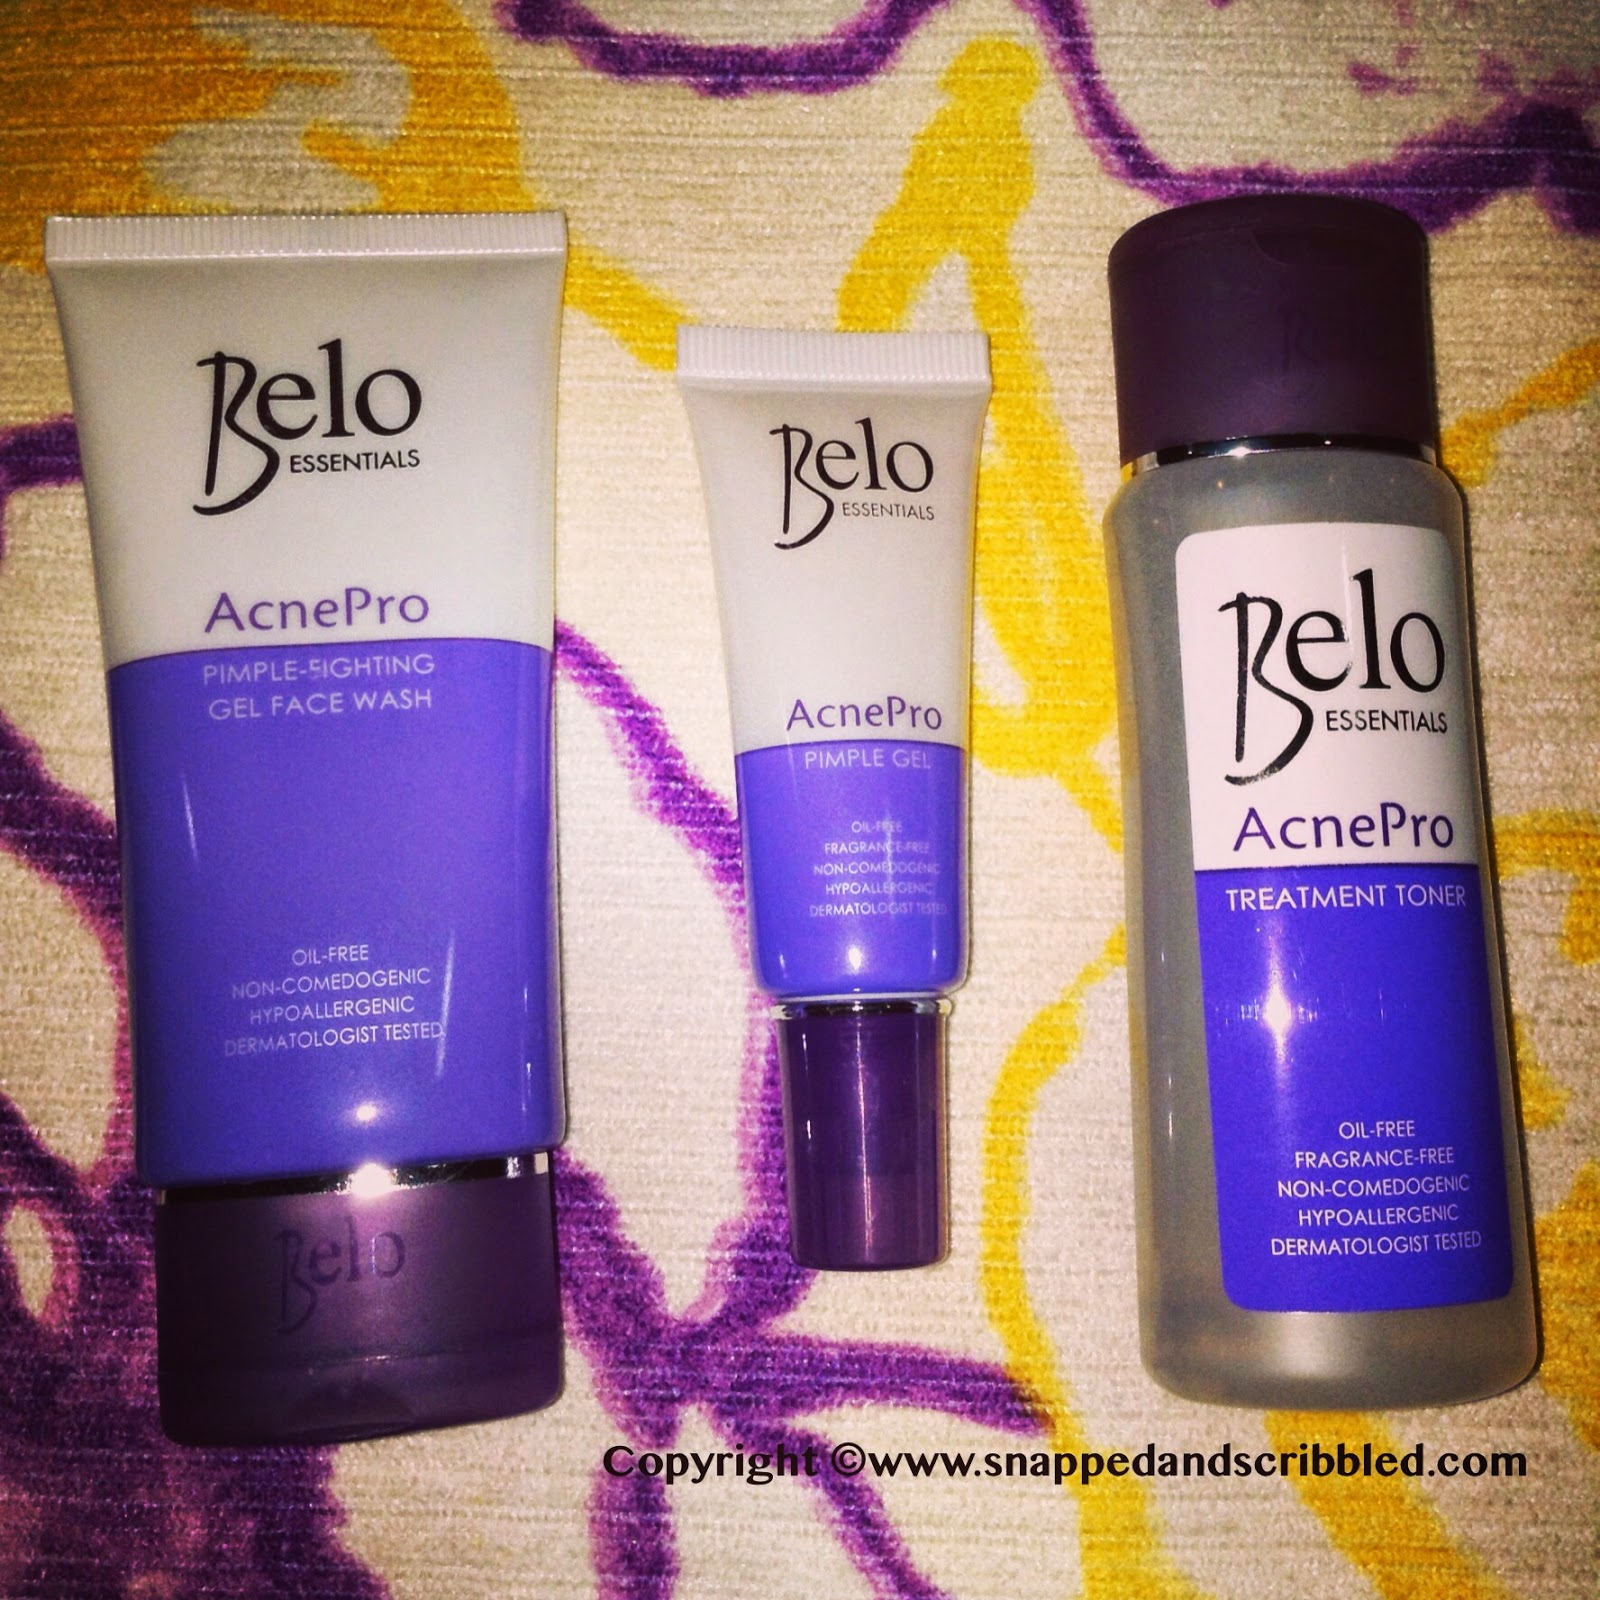 Belo Essentials AcnePro